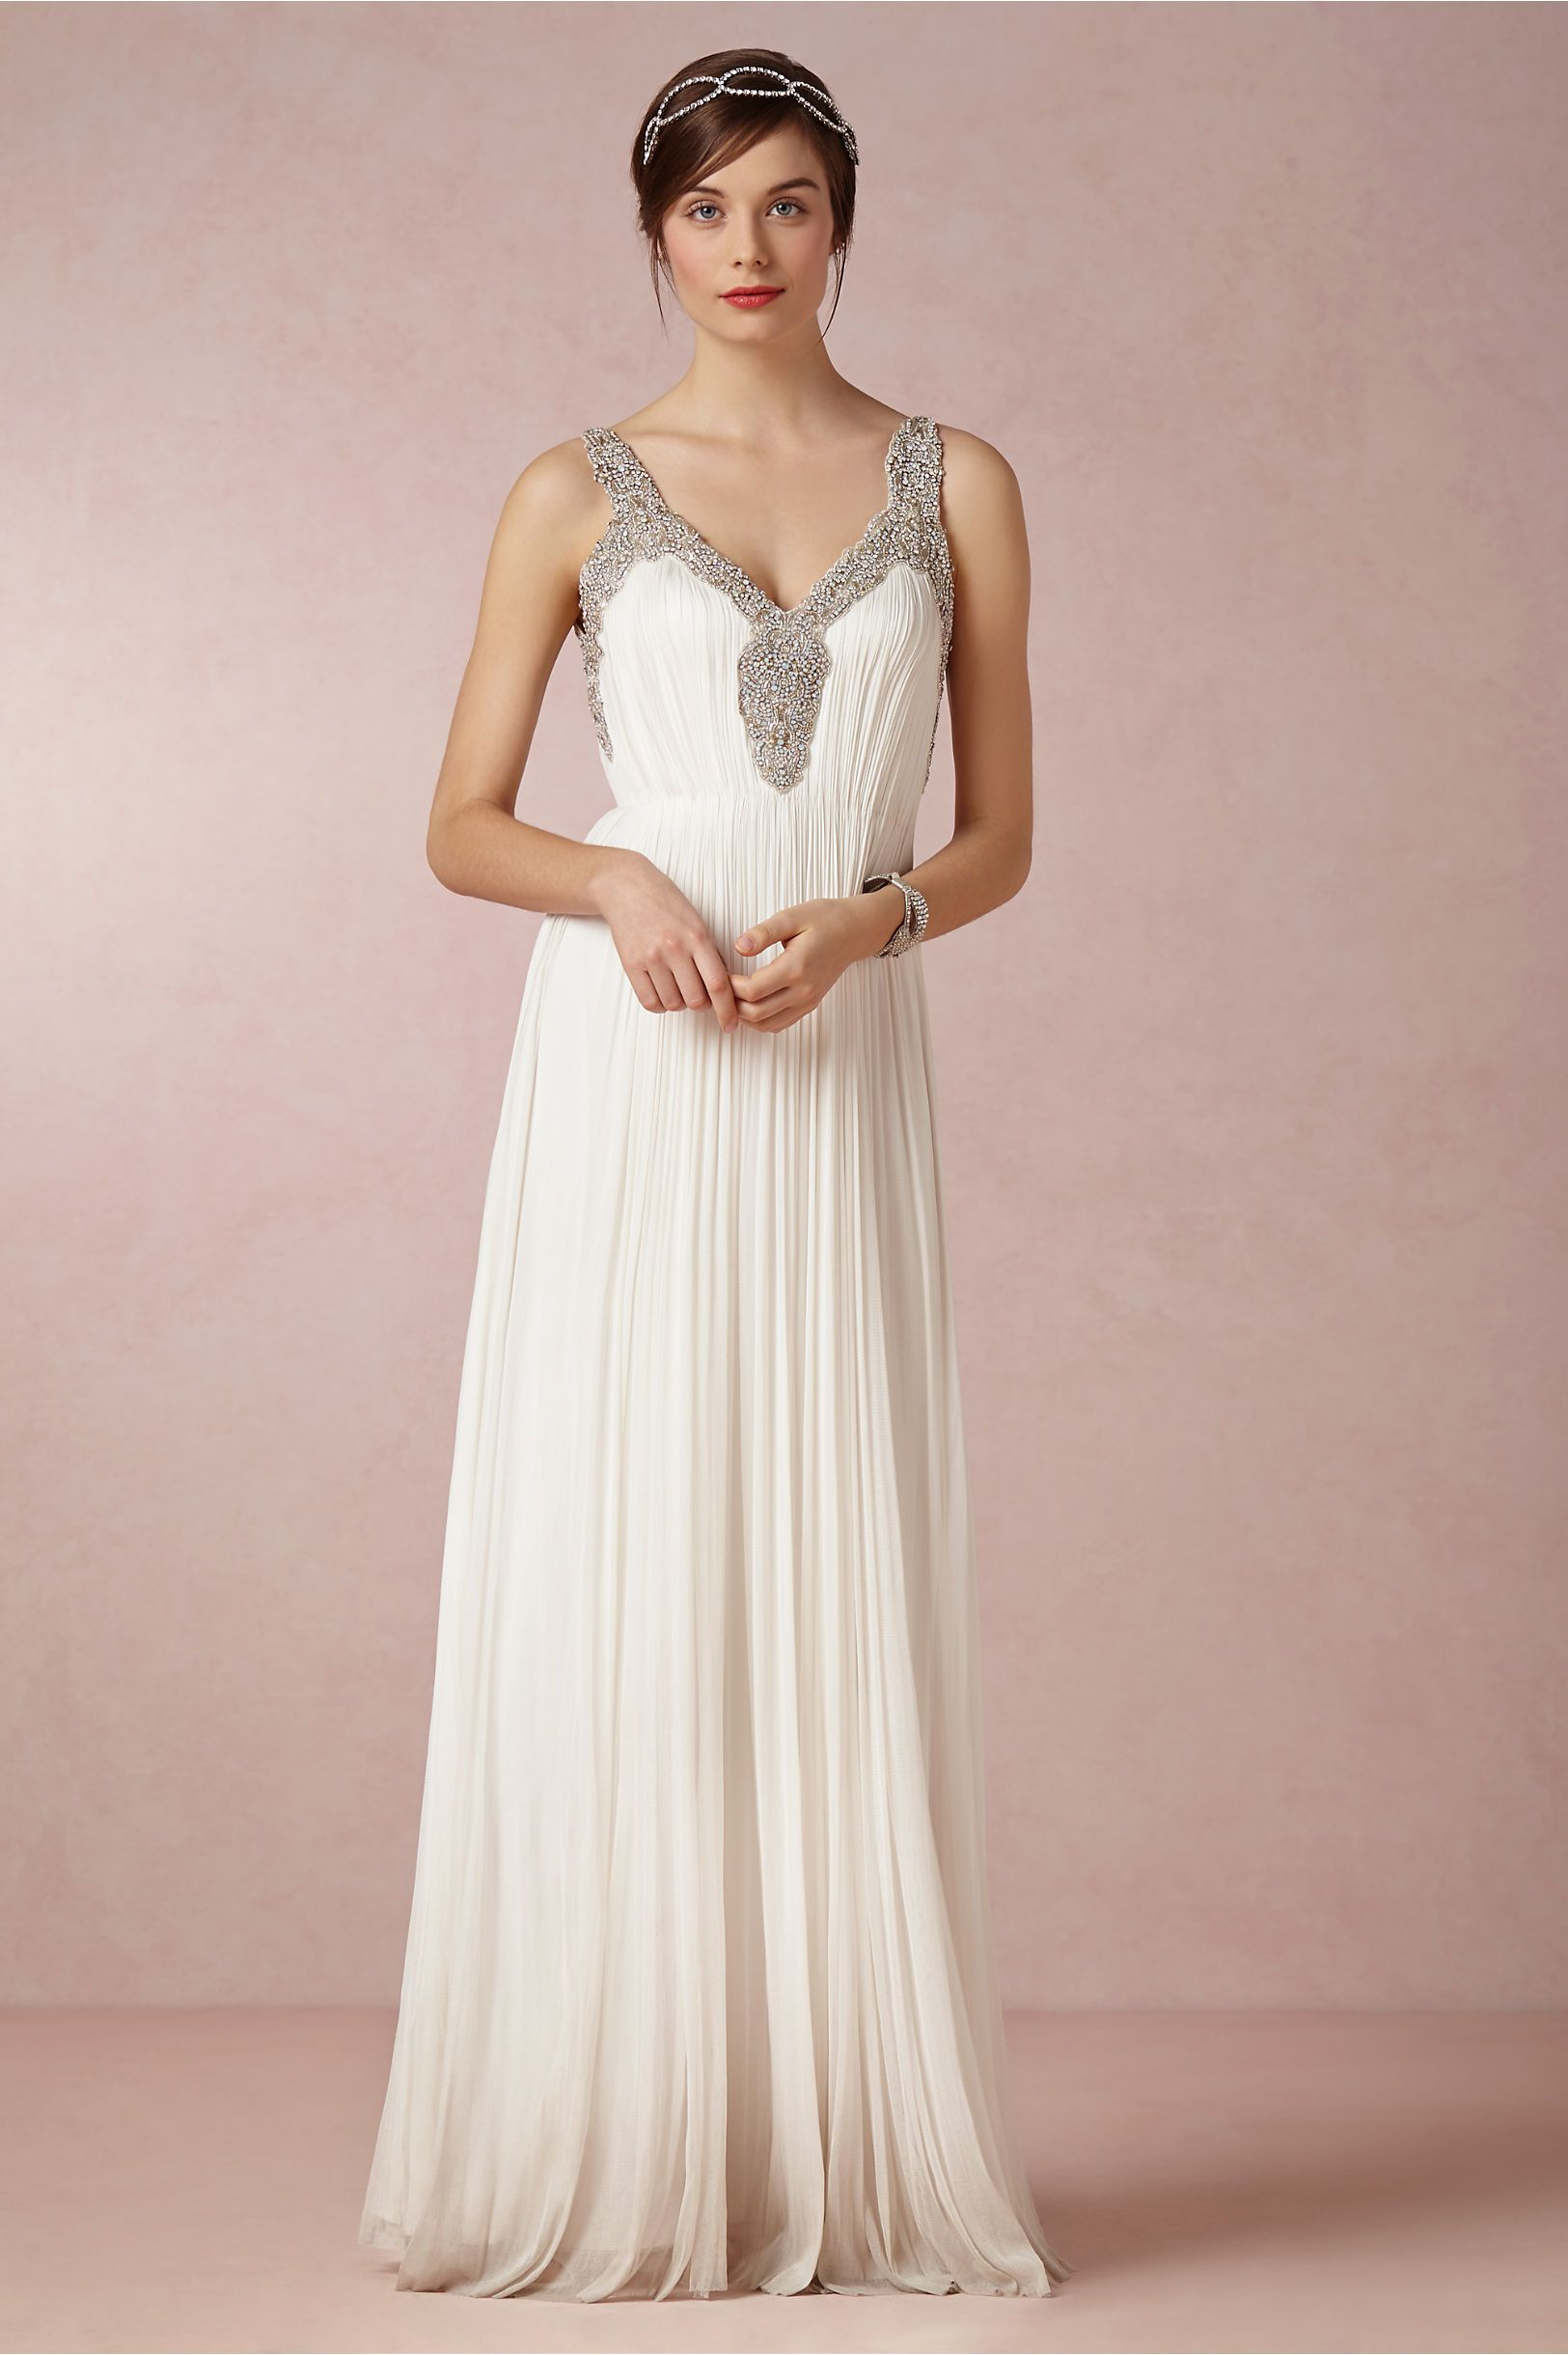 BHLDN Tia Size 6 Wedding Dress | Gowns, Wedding dress and Weddings